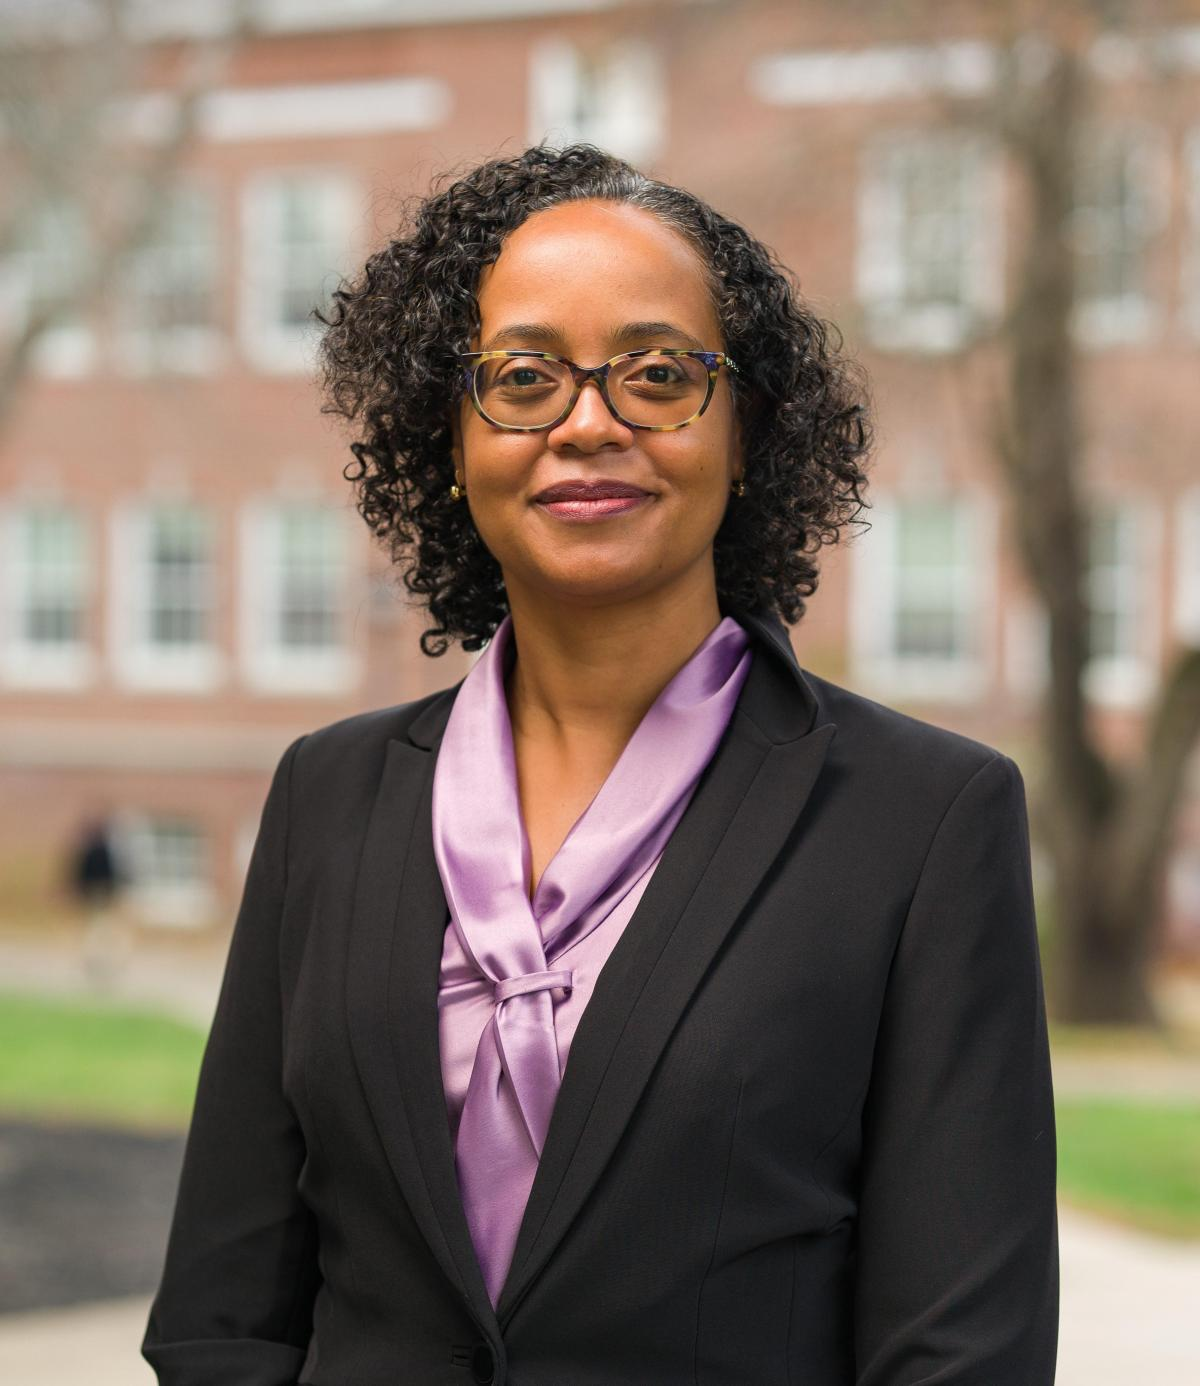 Dr. Nadine Petty, UNH Chief Diversity Officer